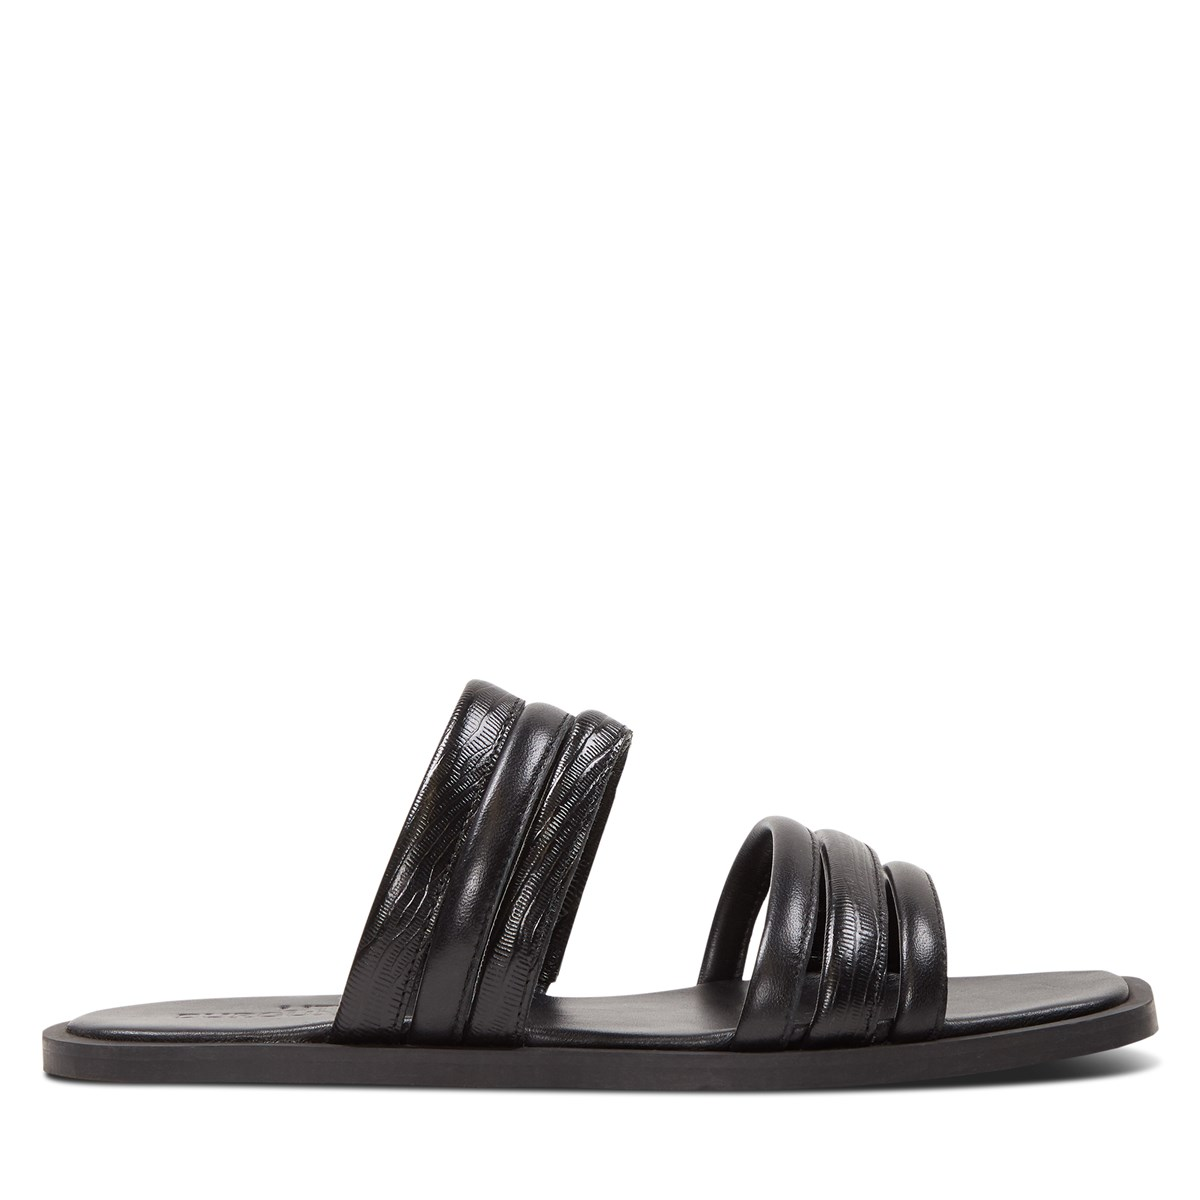 Women's Alicia Slip-On Flat Sandals in Black